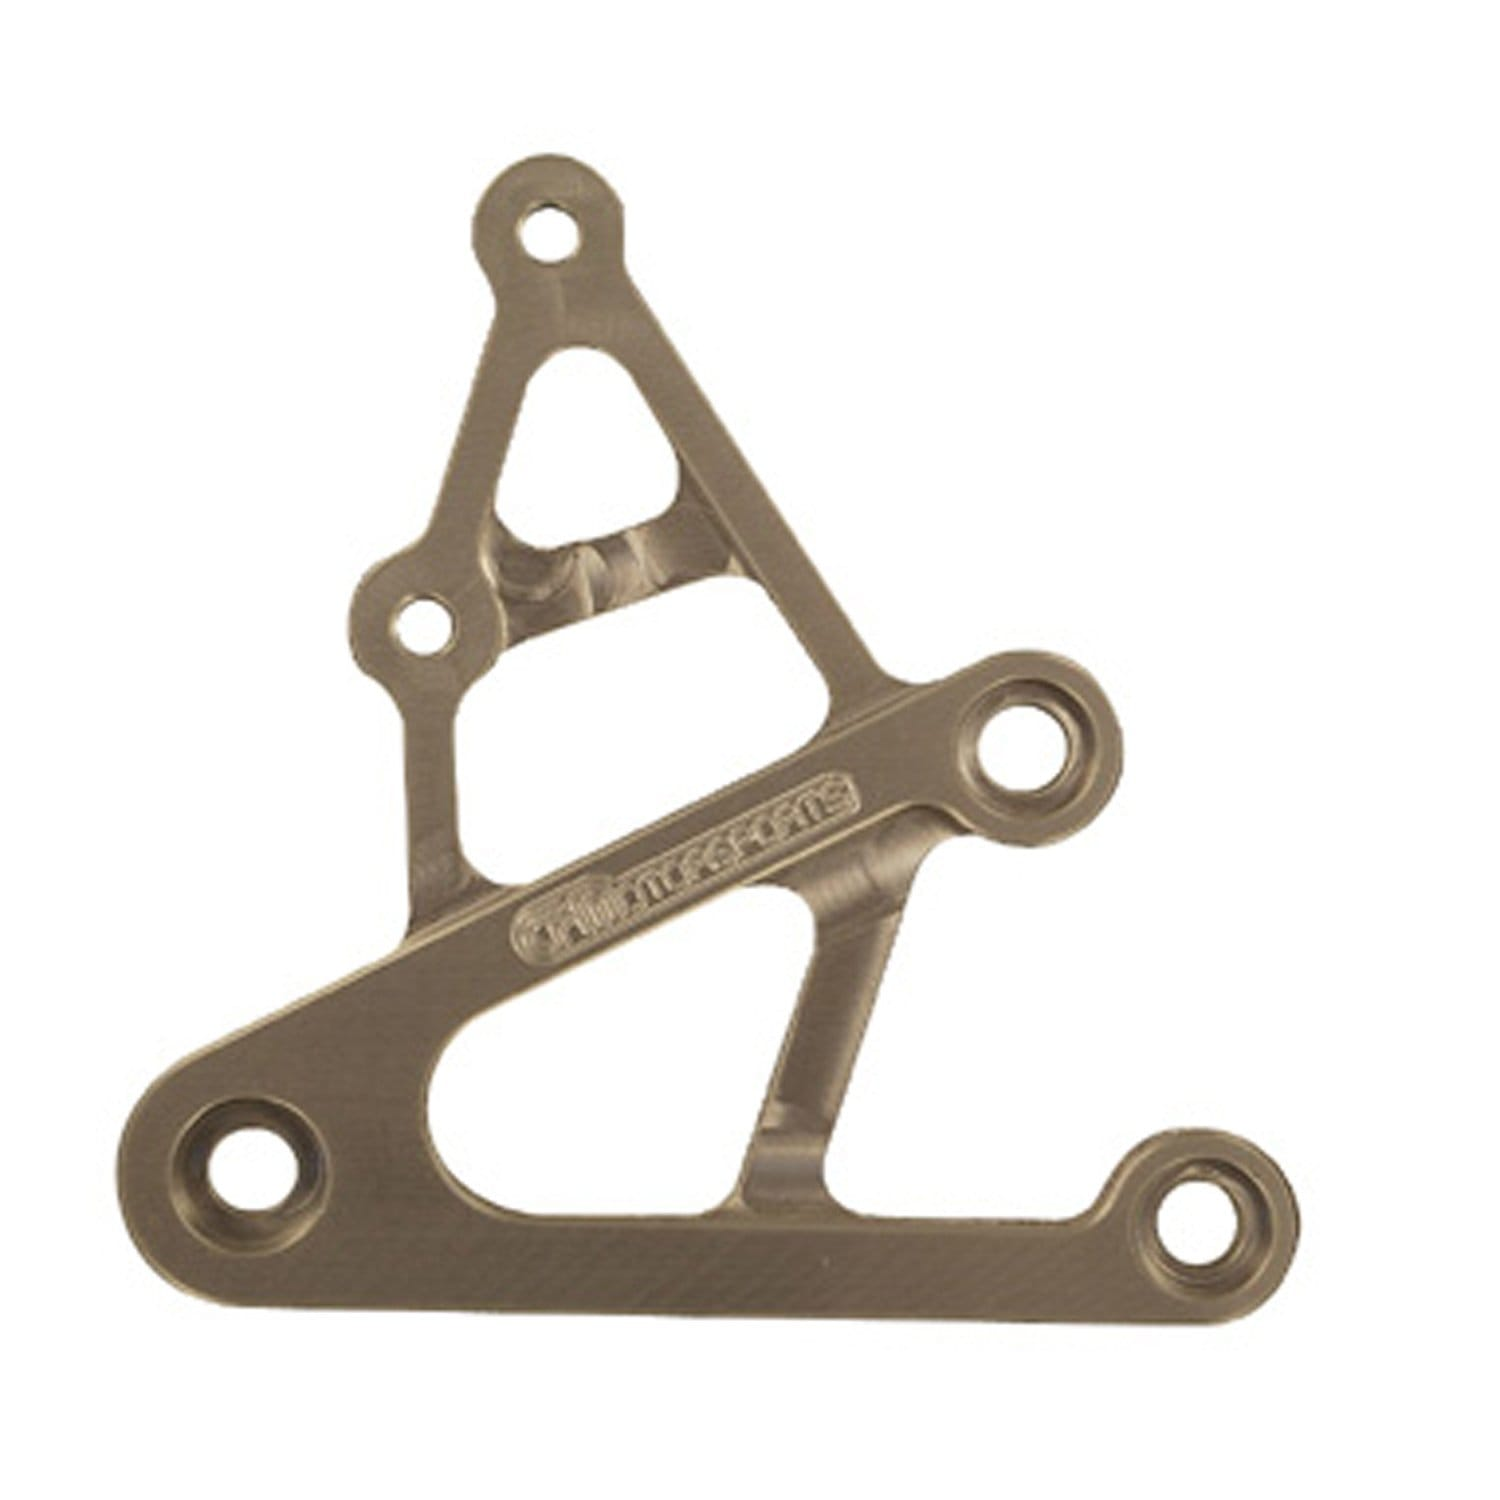 05-0110R Kaw ZX6 '98-02, ZX9 '98-03, ZZR600 '05-08 RHS Bracket - Woodcraft Technologies - Motorcycle Parts